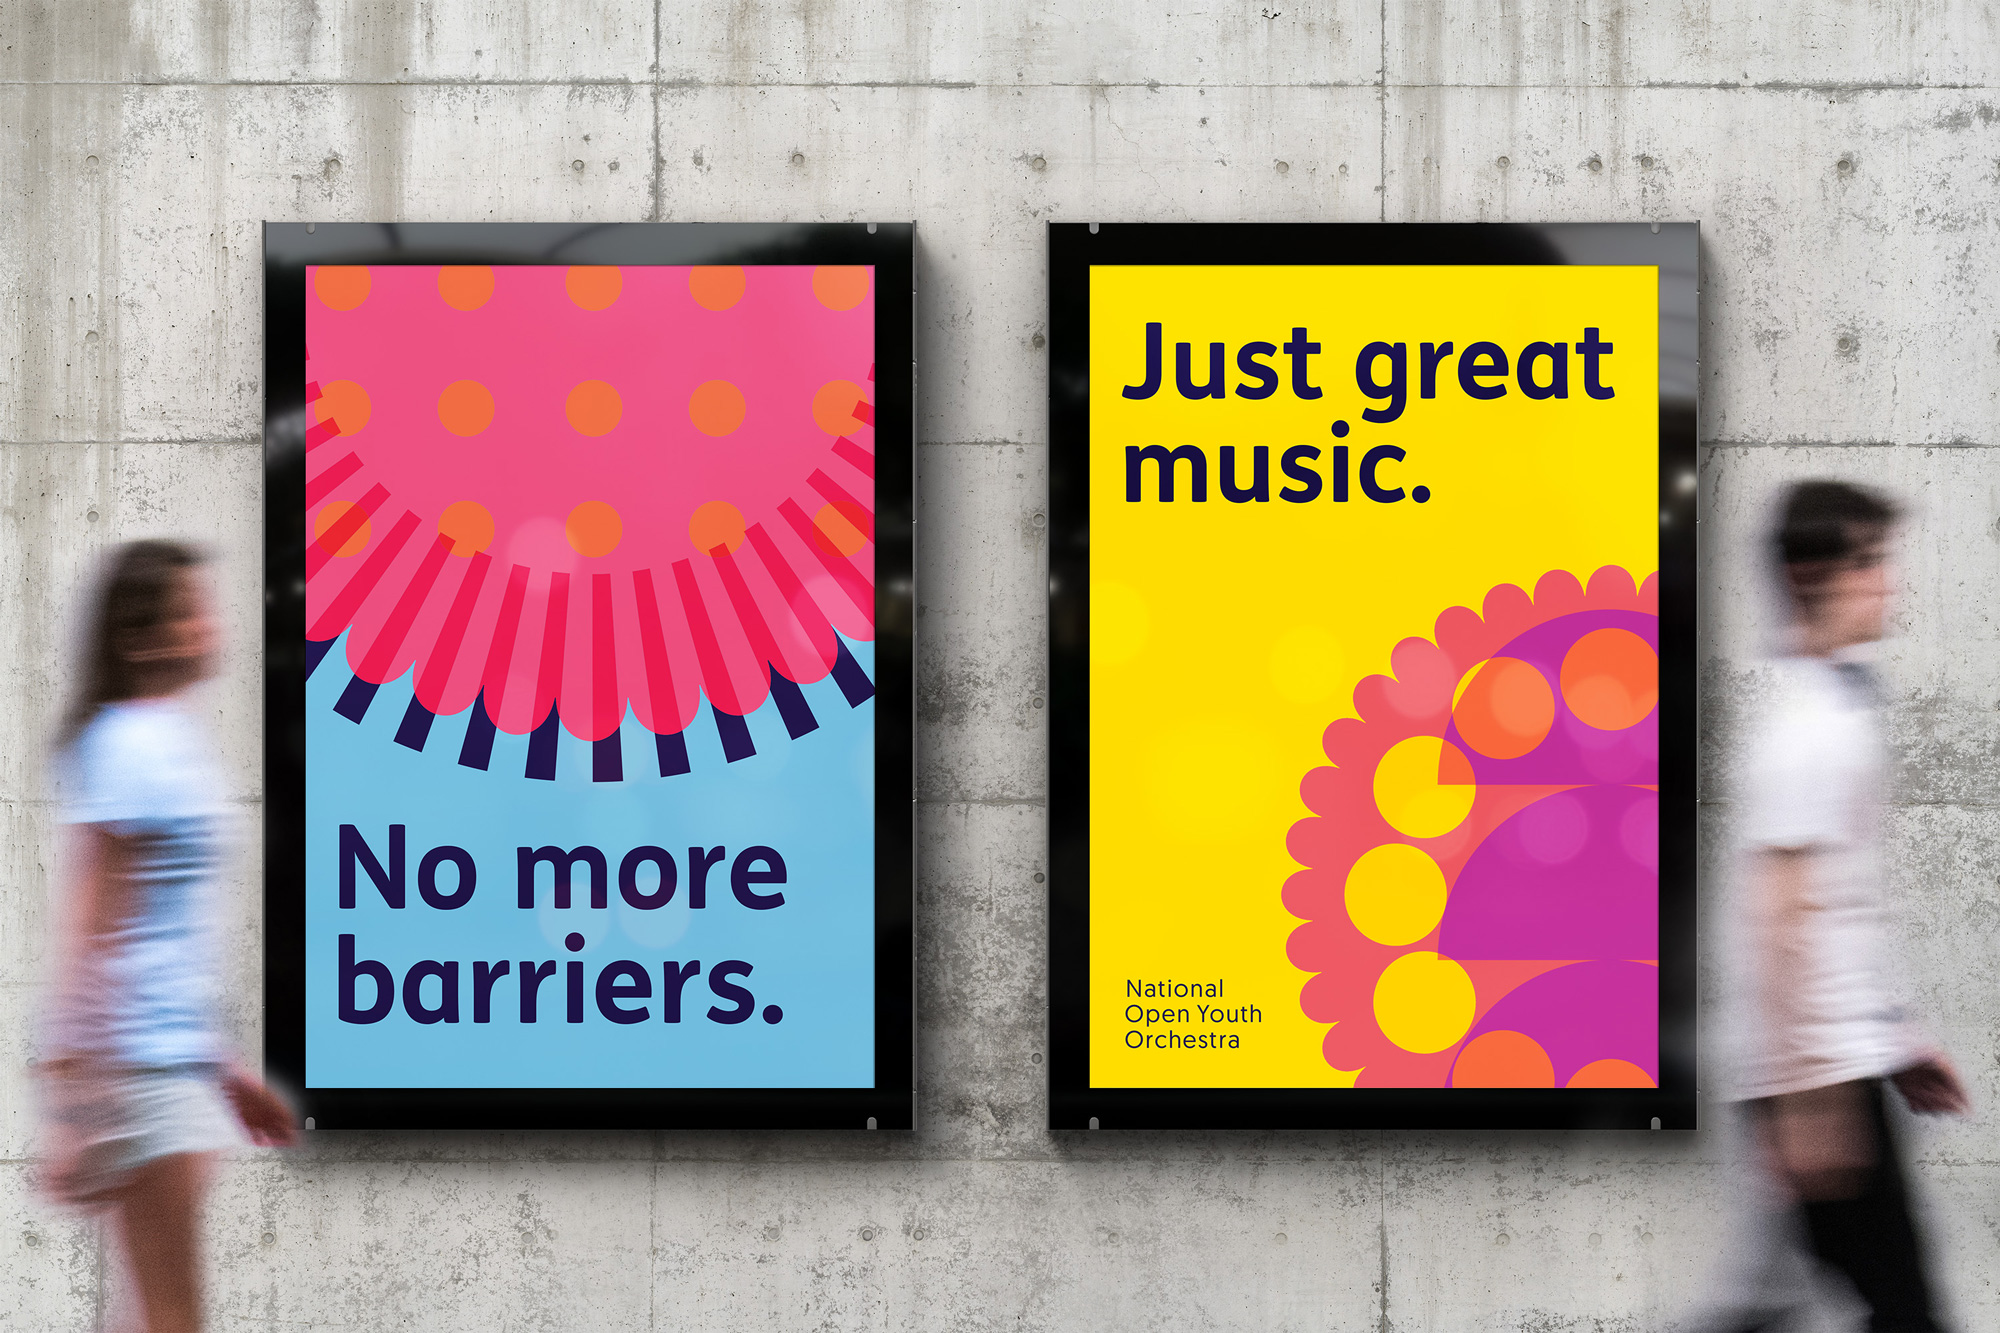 New Logo and Identity for National Open Youth Orchestra by Fiasco Design